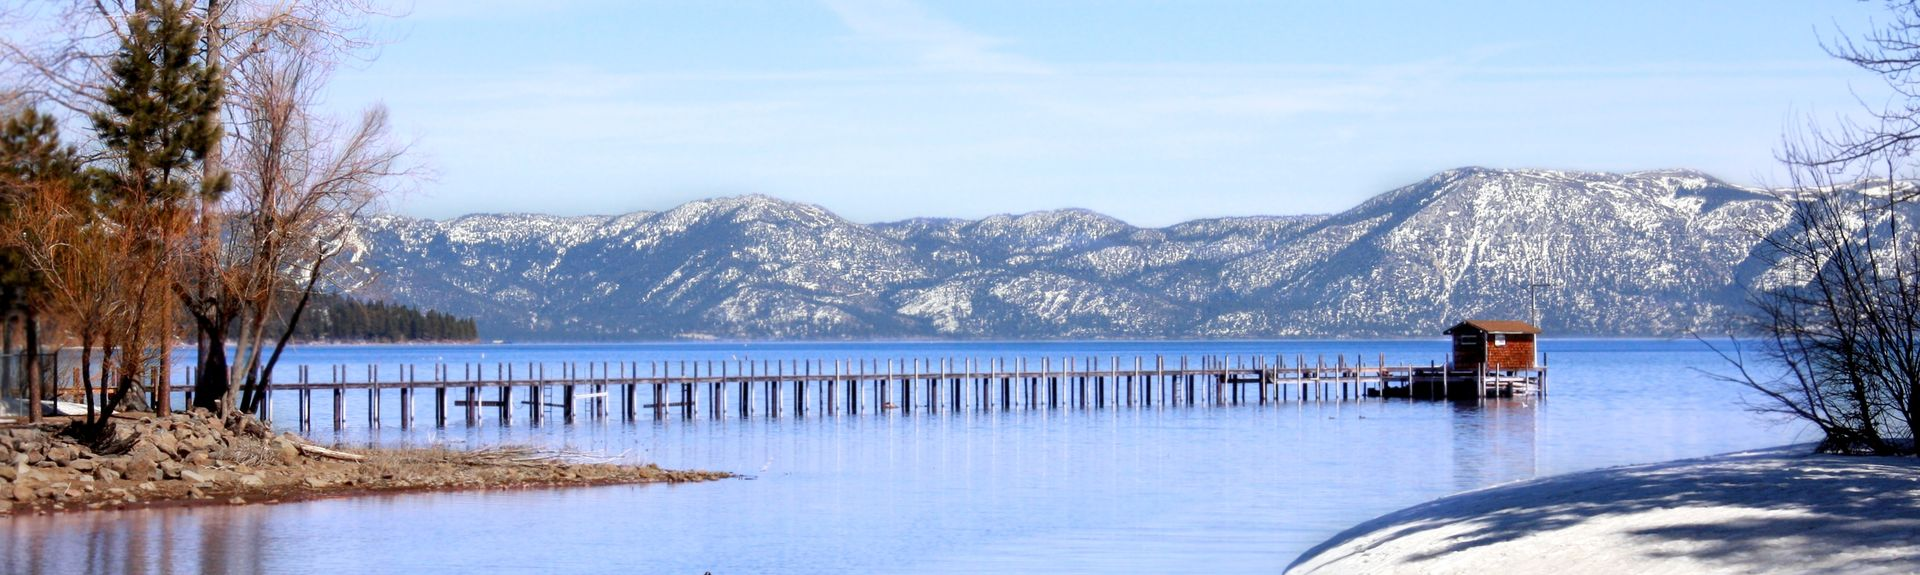 Tahoe City, California, United States of America